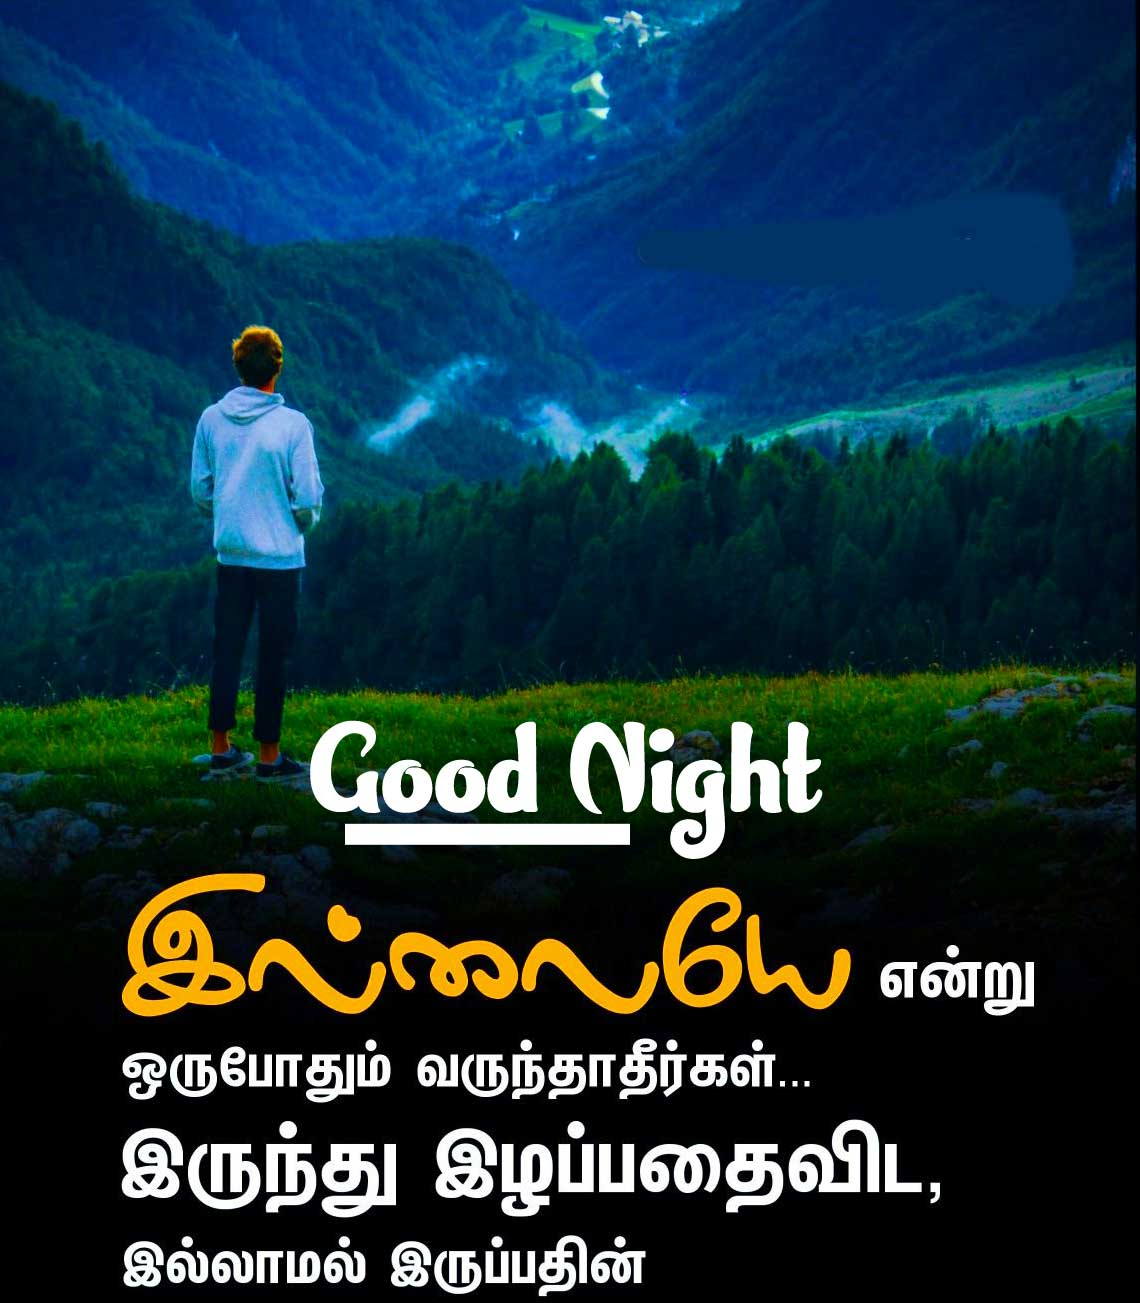 Tamil Good Night Wishes Images Pics Download Latest